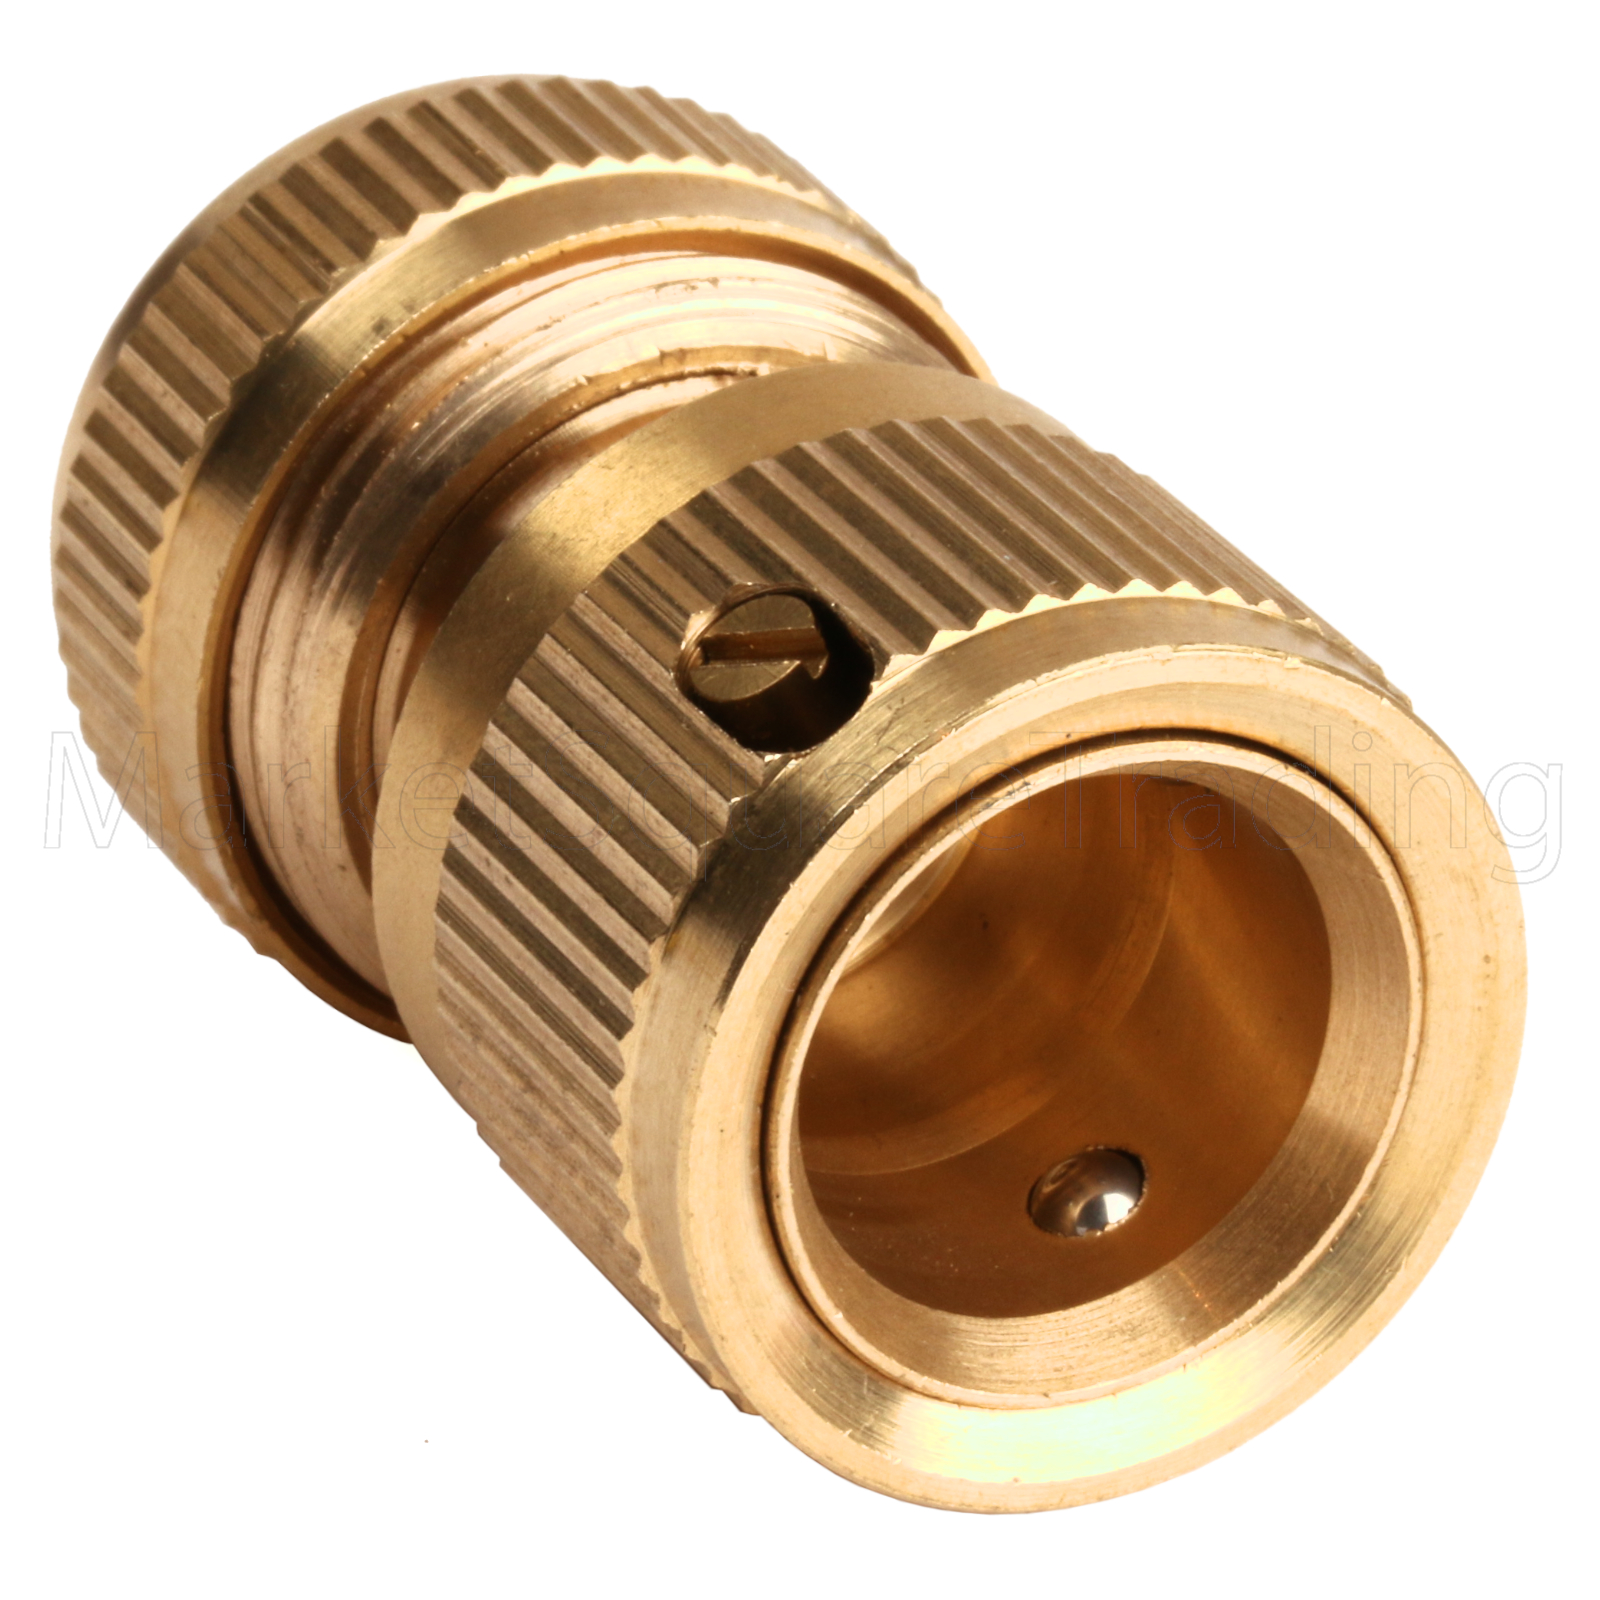 Brass hosepipe connector quick adaptor outside tap kit